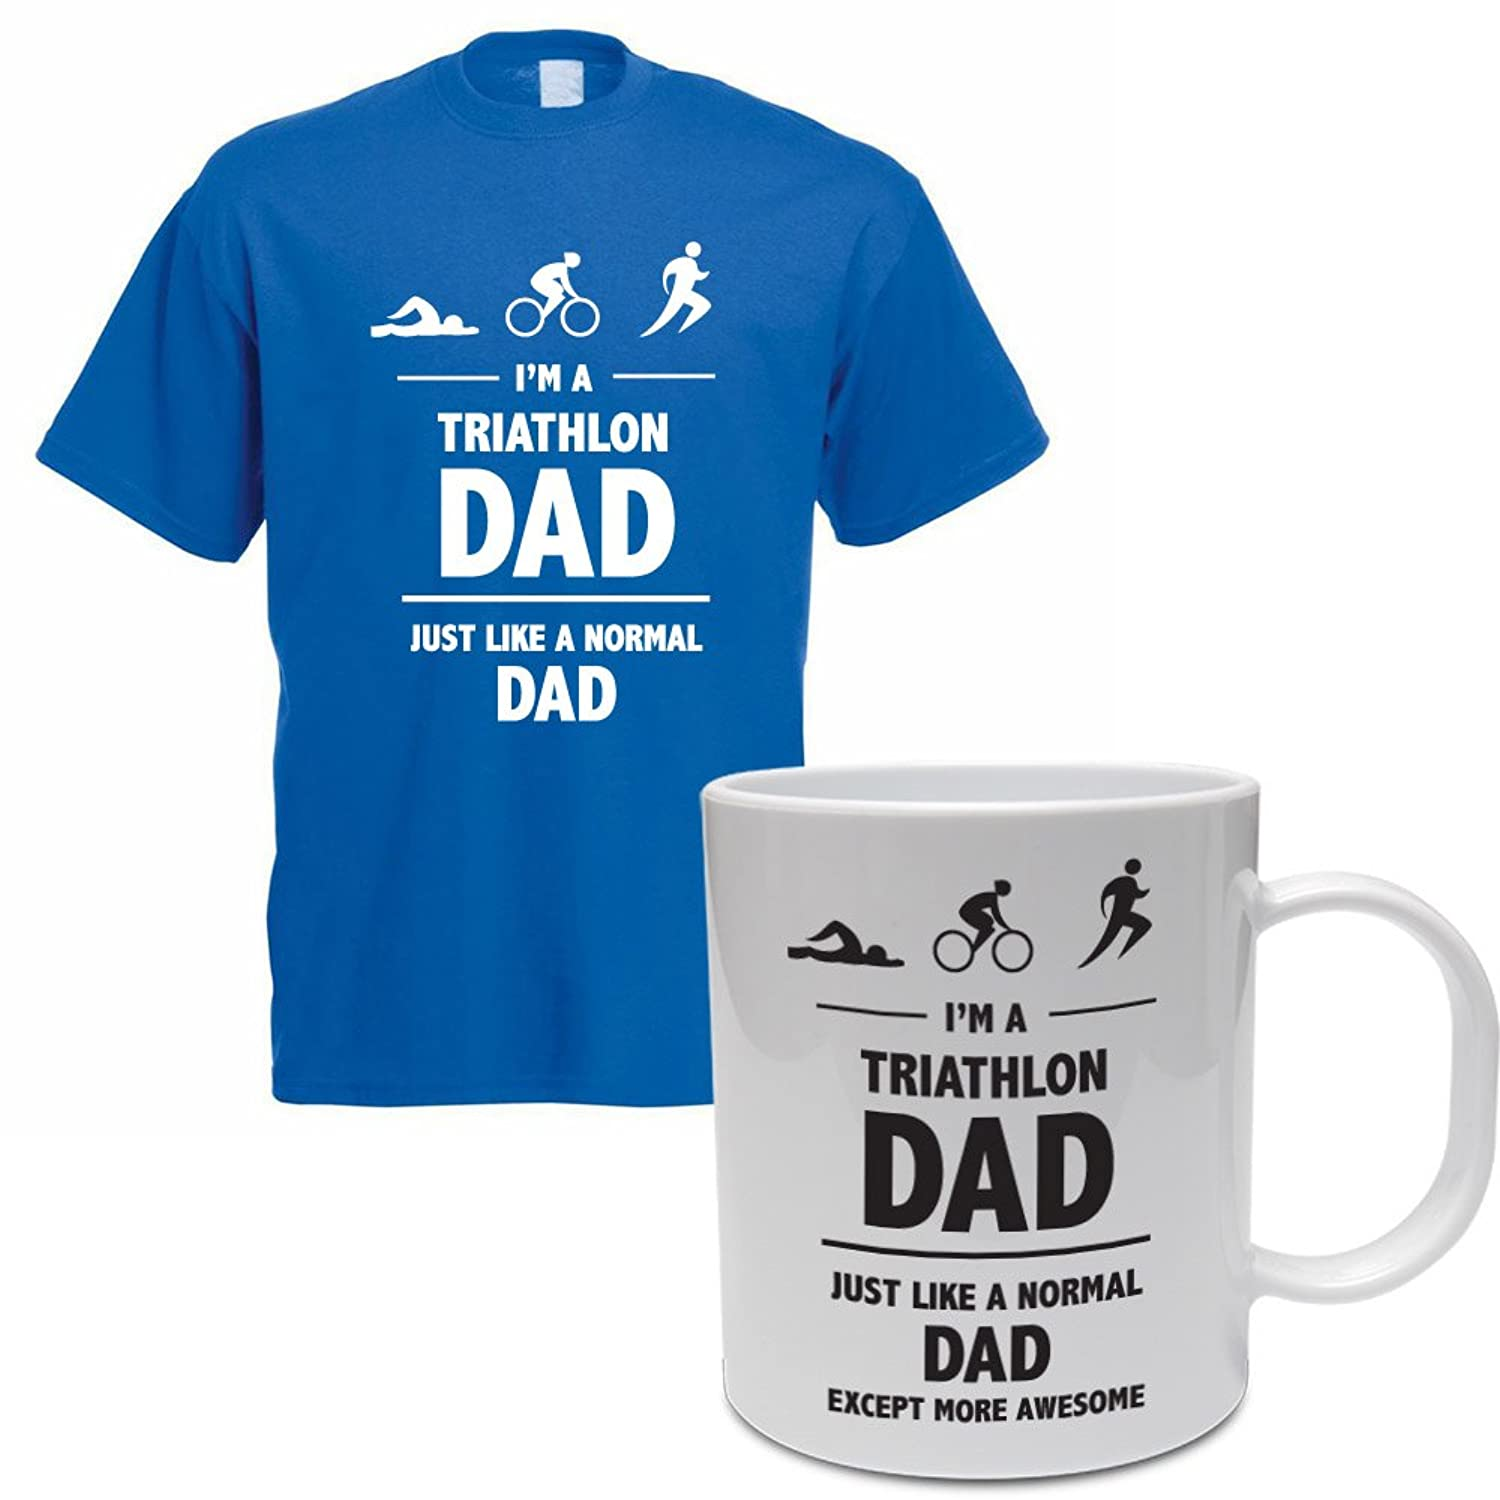 I'M A TRIATHLON DAD - Father's Day / Sporting / Funny Gift Idea / Men's T-Shirt And Ceramic Mug Gift Set